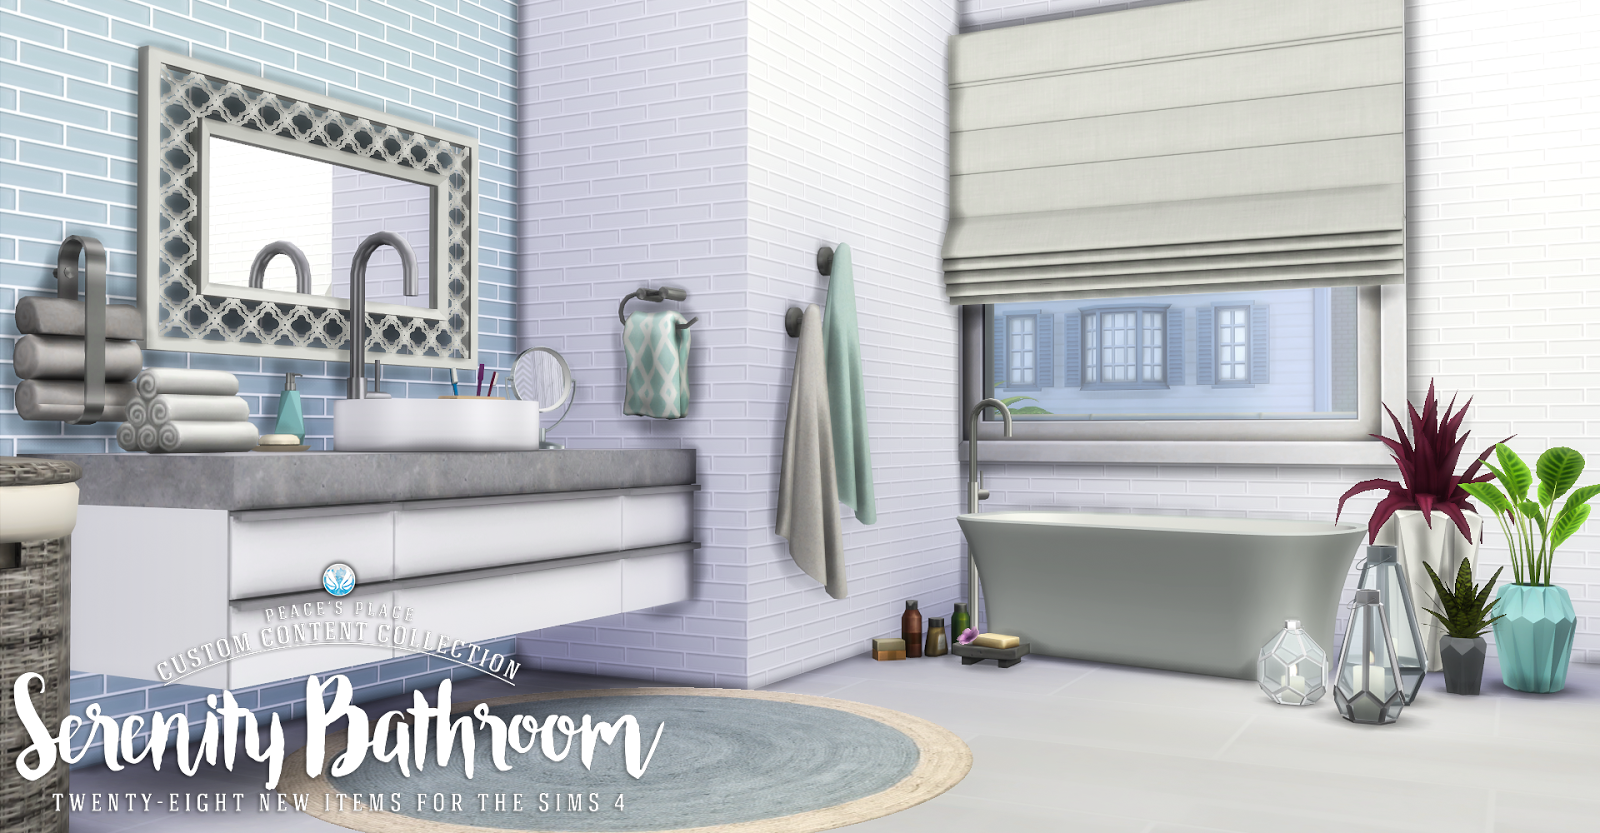 Gaudium bathroom at simcredible designs 4 image 2006 670x397 sims 4 -  10 Best Bathroom Sets For The Sims 4 Teh Sims